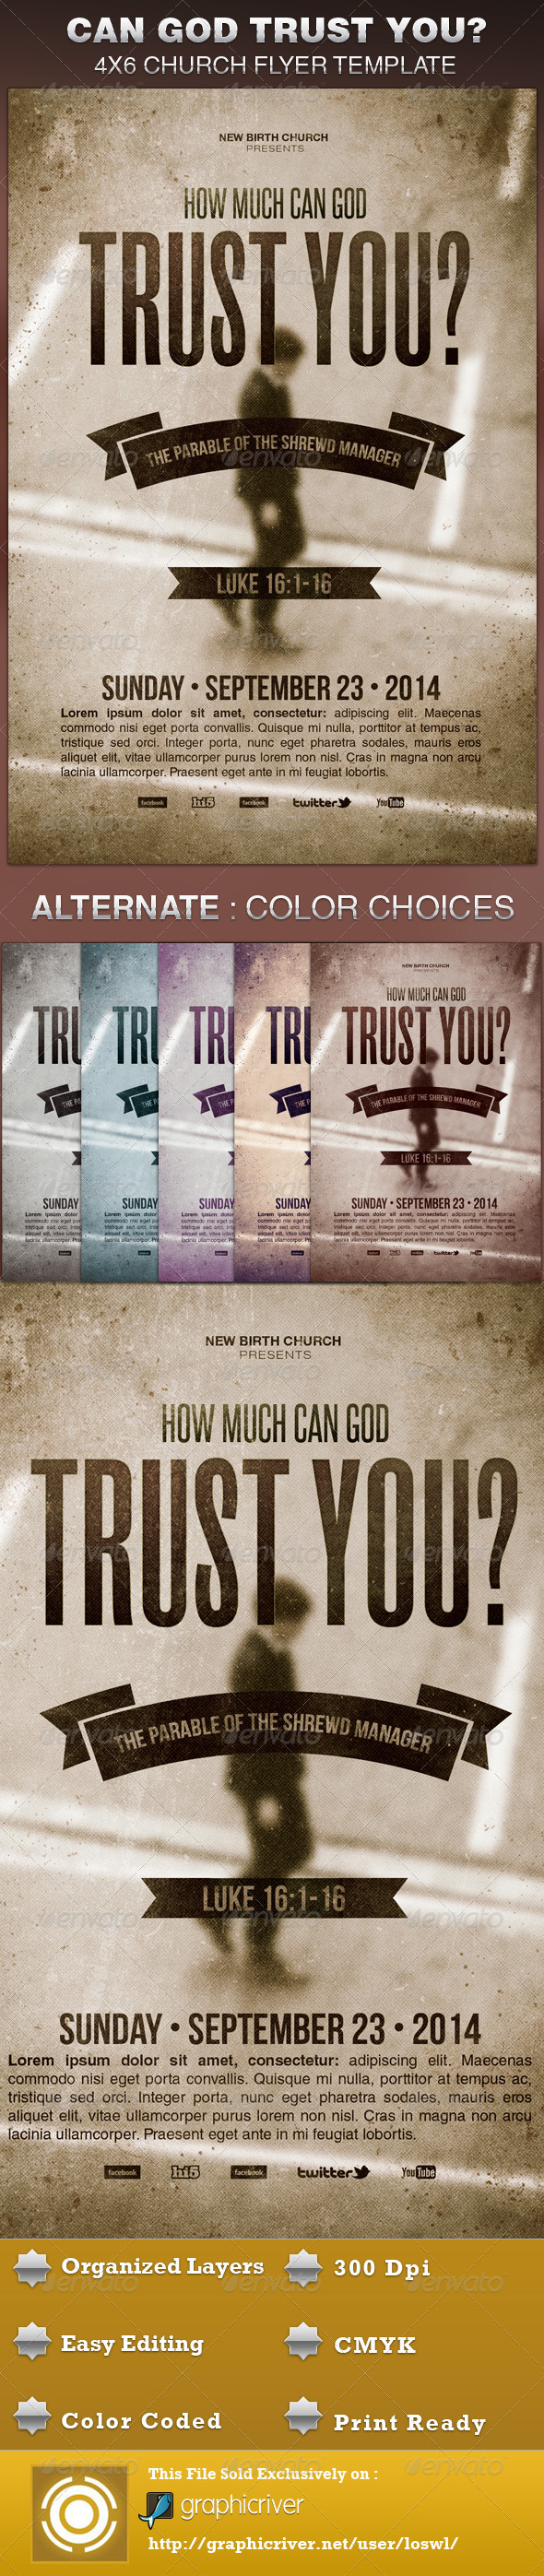 GraphicRiver How Much Can God Trust You Church Flyer Template 5675676